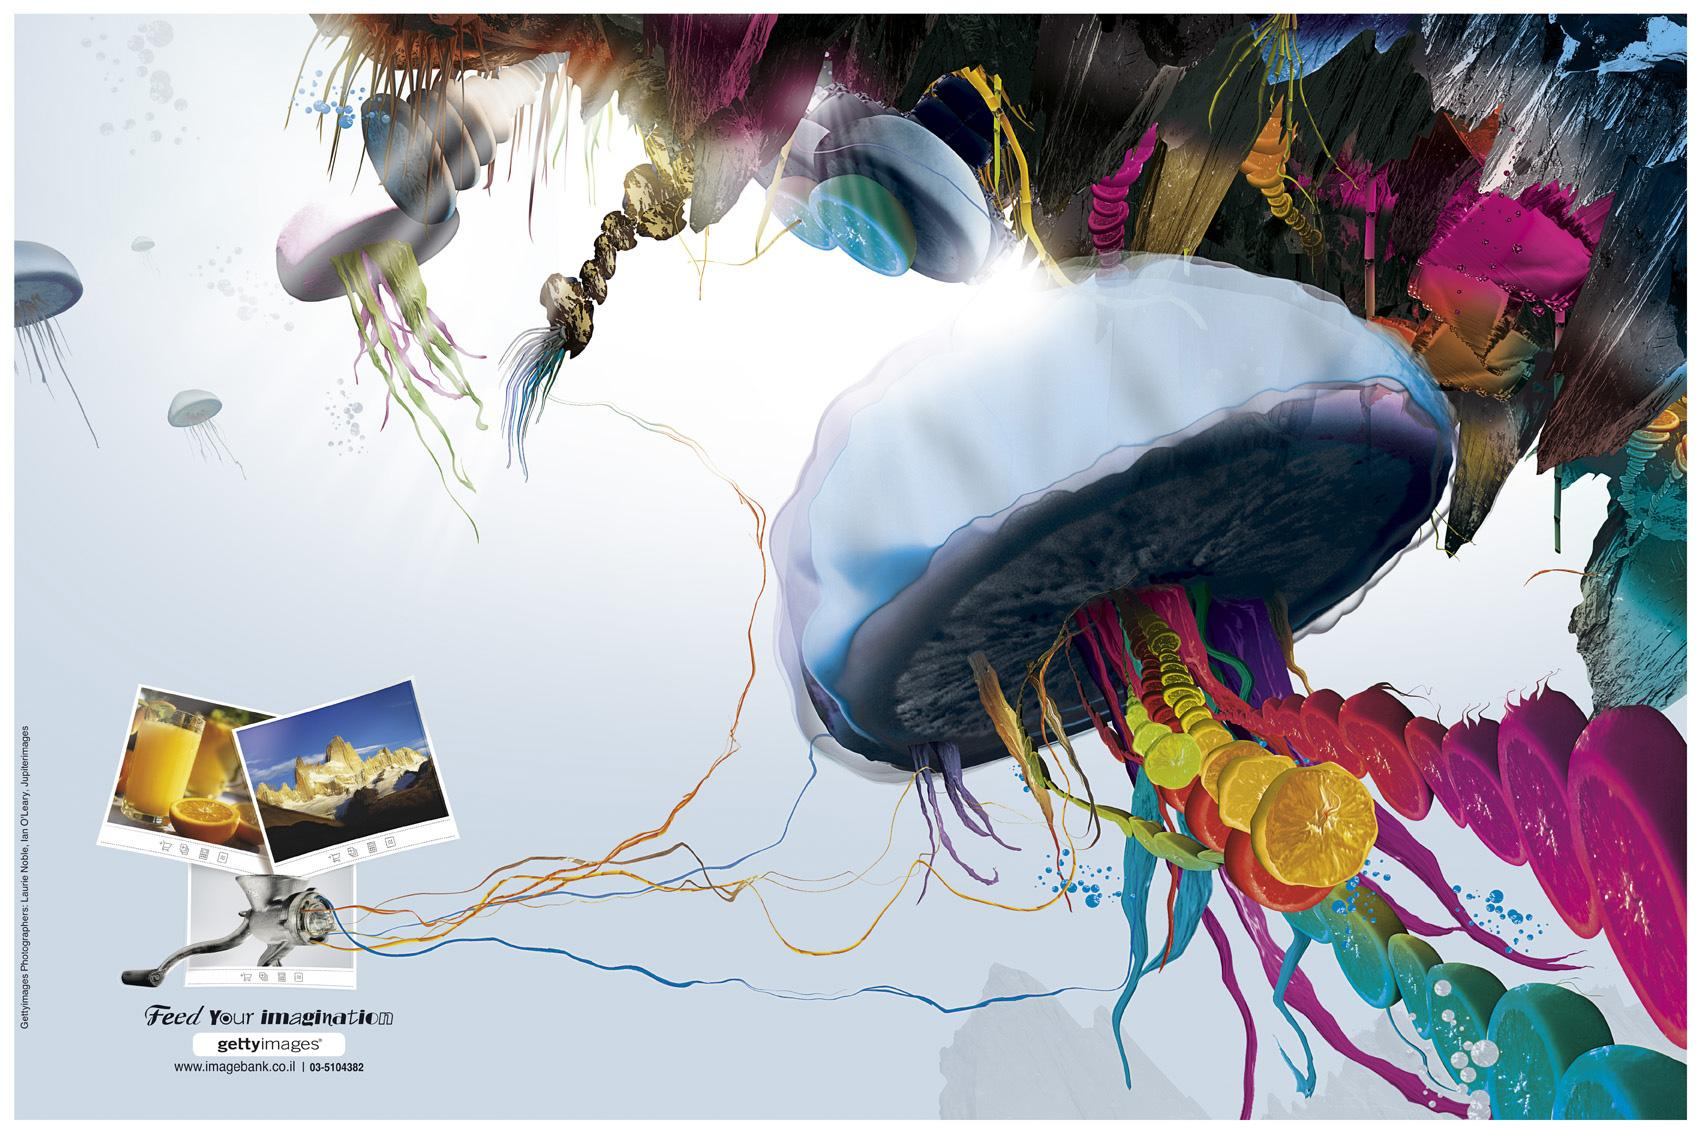 Getty Images Print Ad -  Underwater